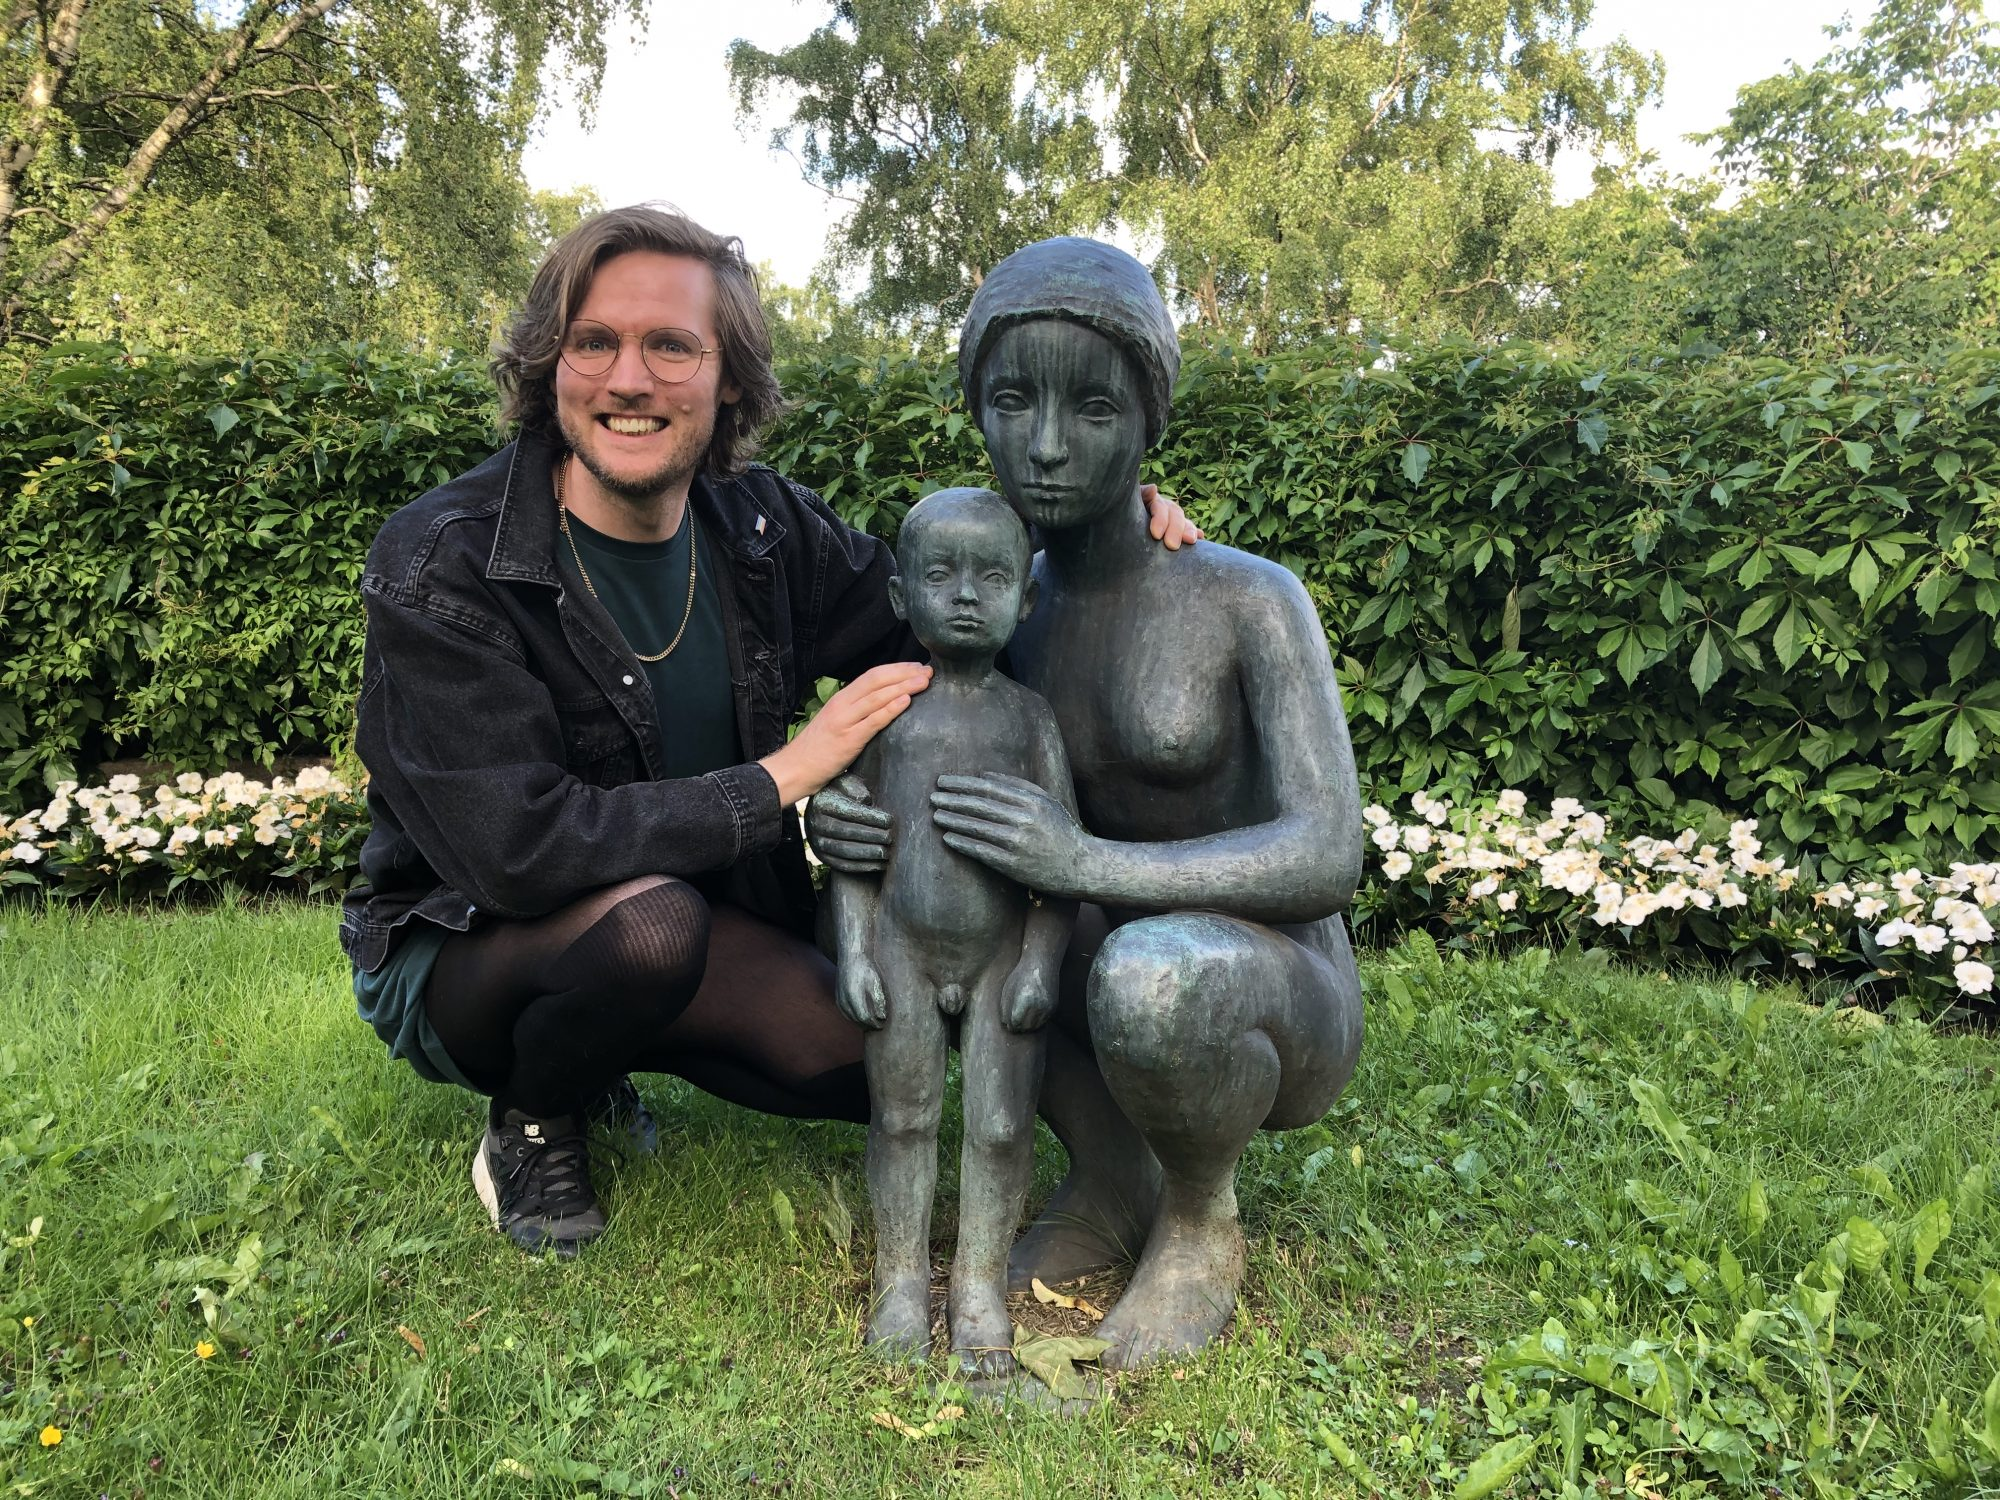 A photo of Matt posing with a statue in a graveyard of a sad lady holding a sad child.